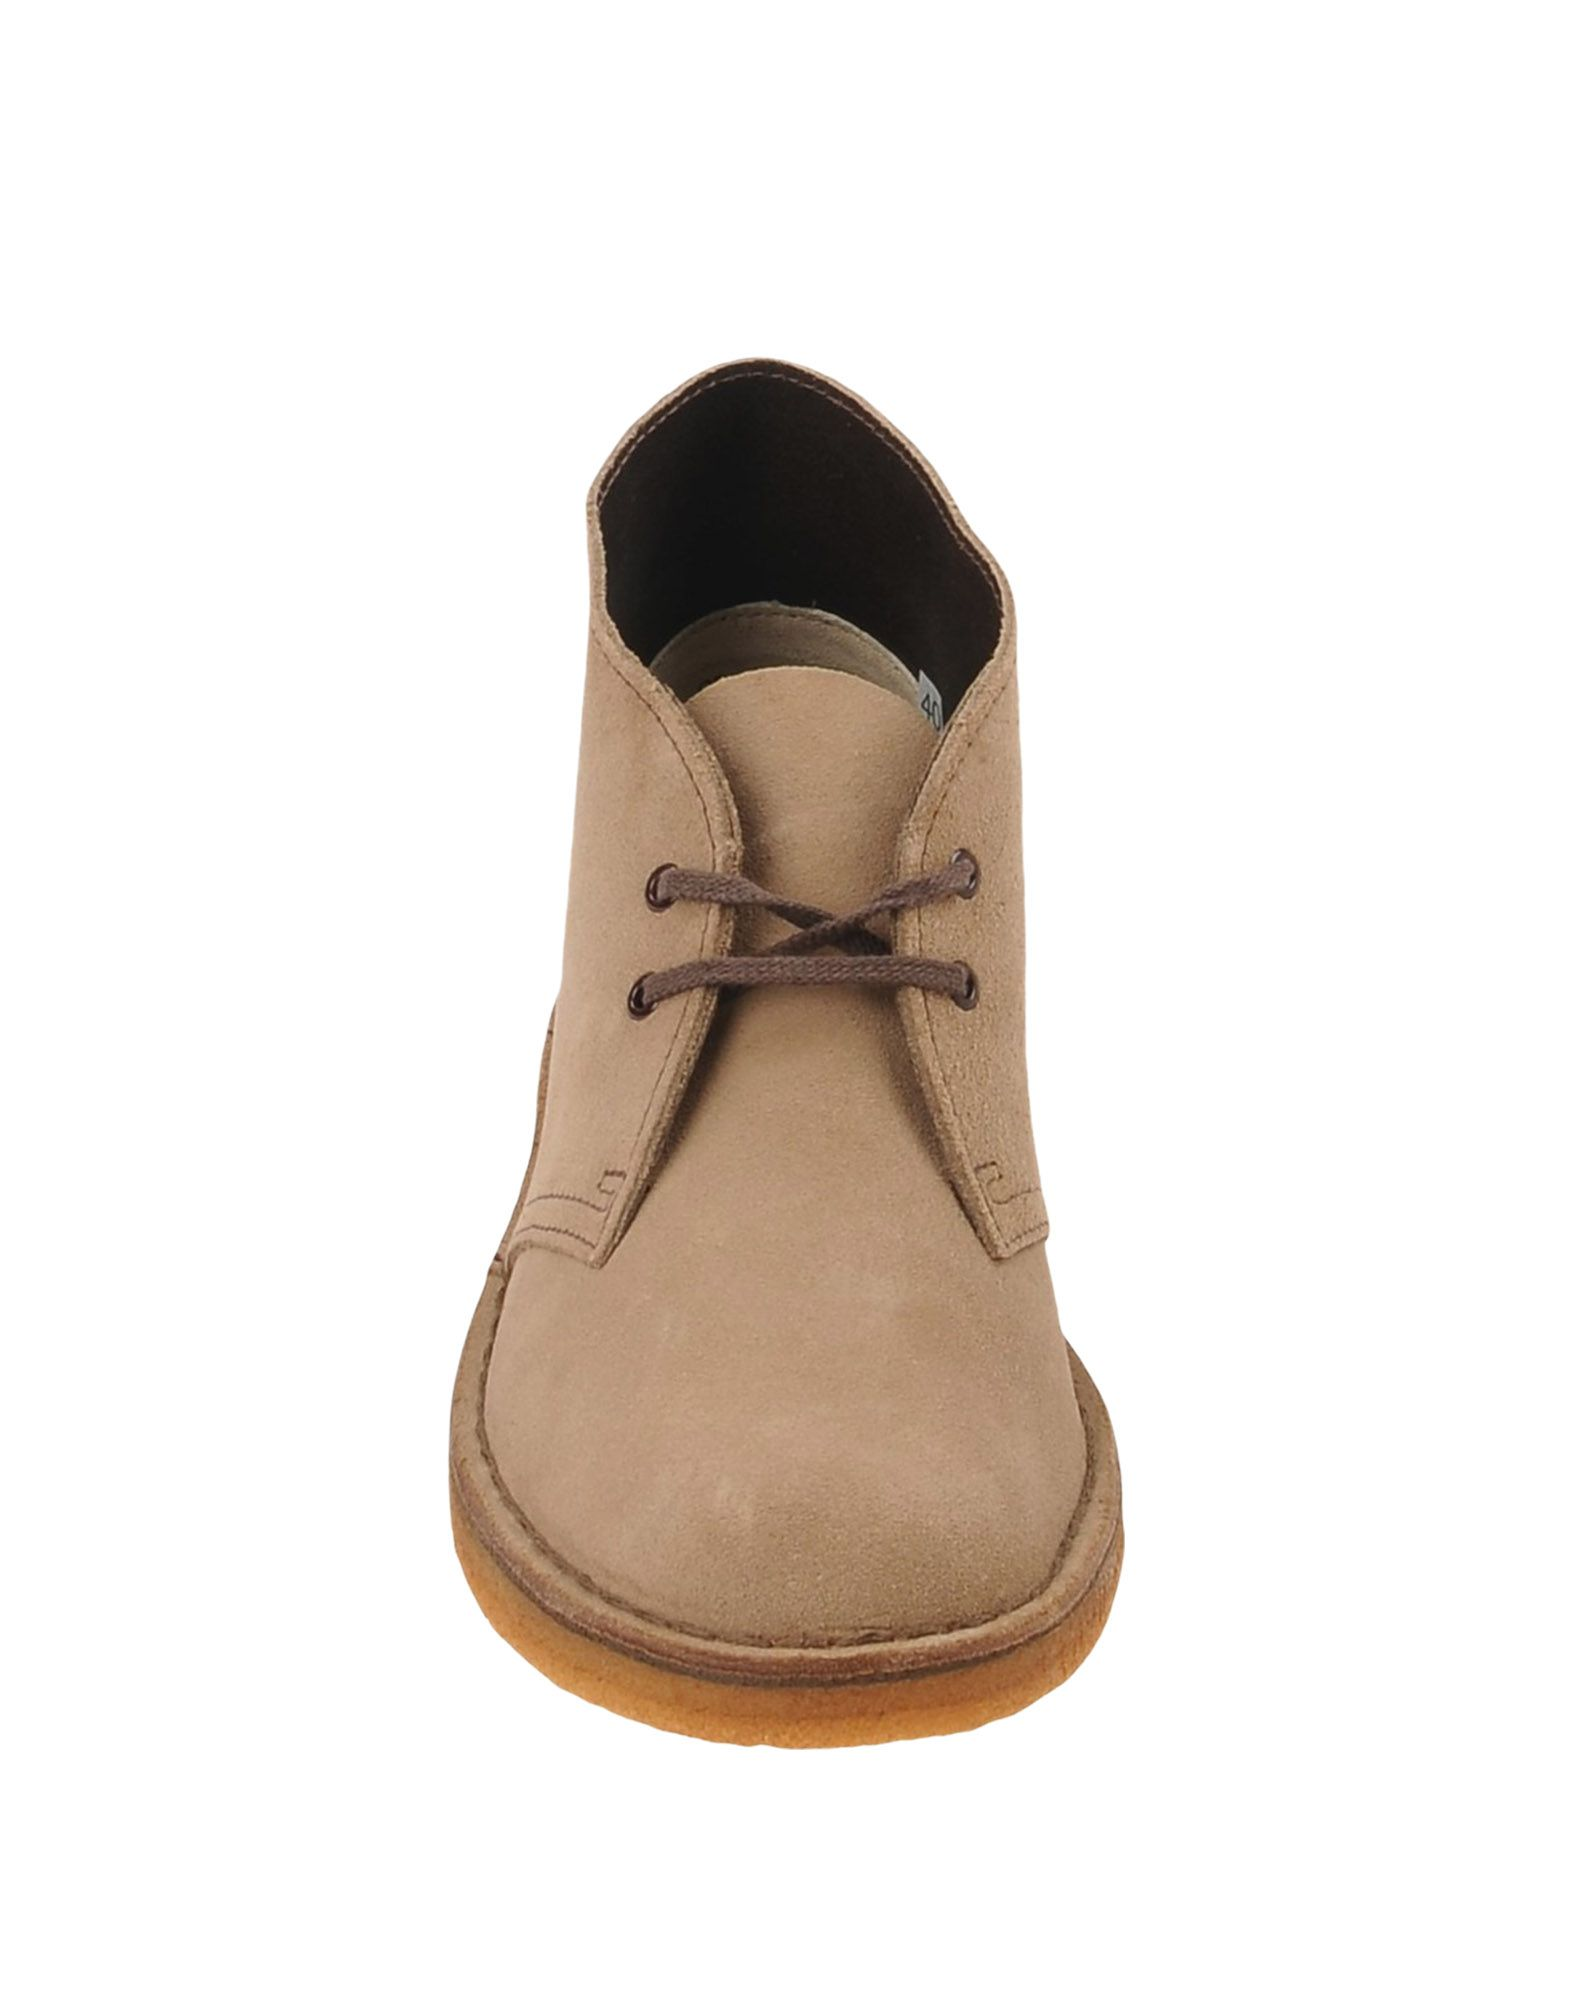 Bottine Clarks Femme - Bottines Clarks sur